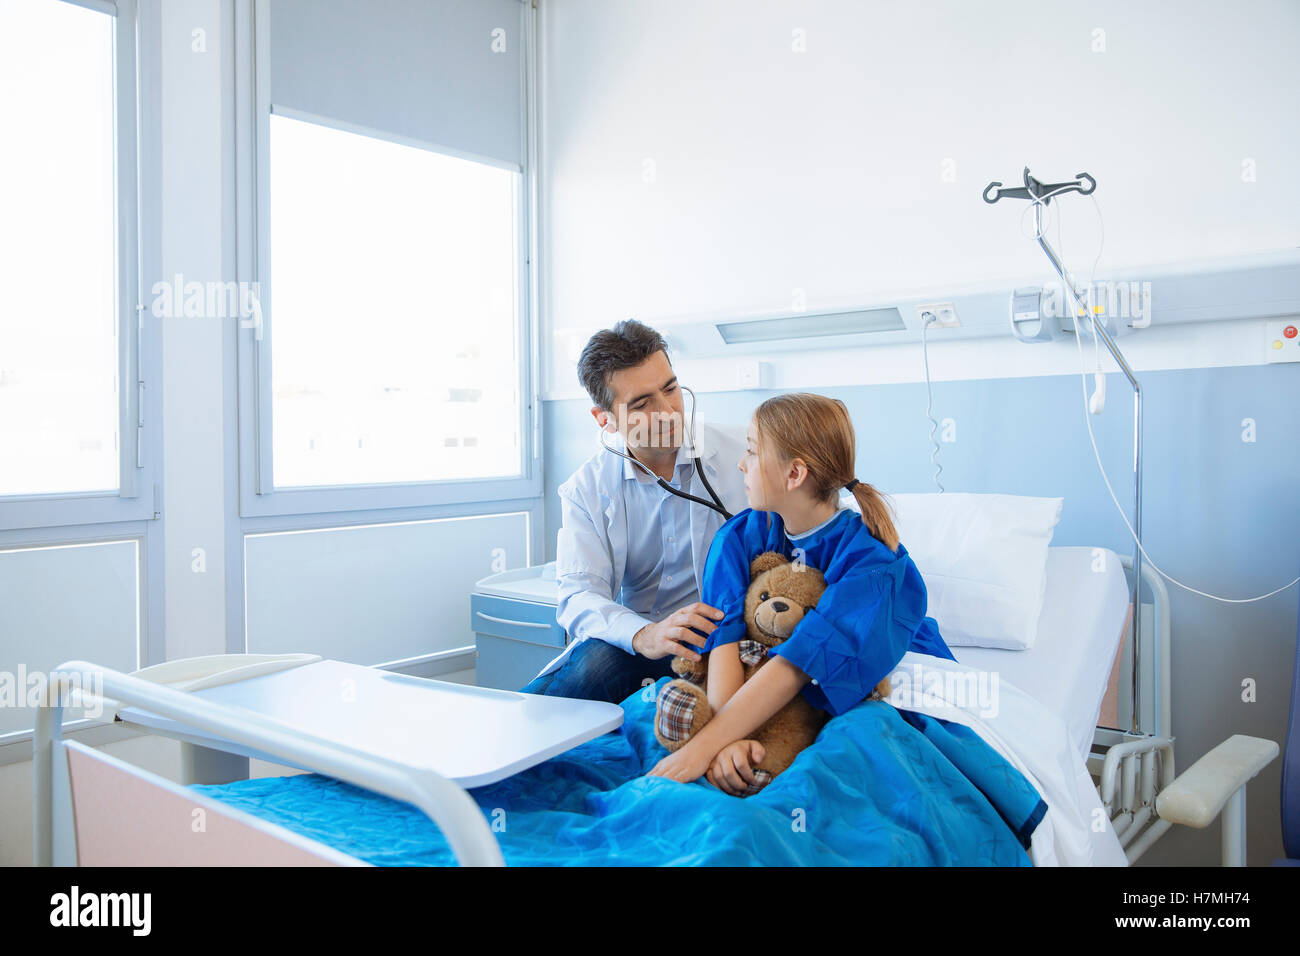 Doctor examining girl patient in hospital - Stock Image